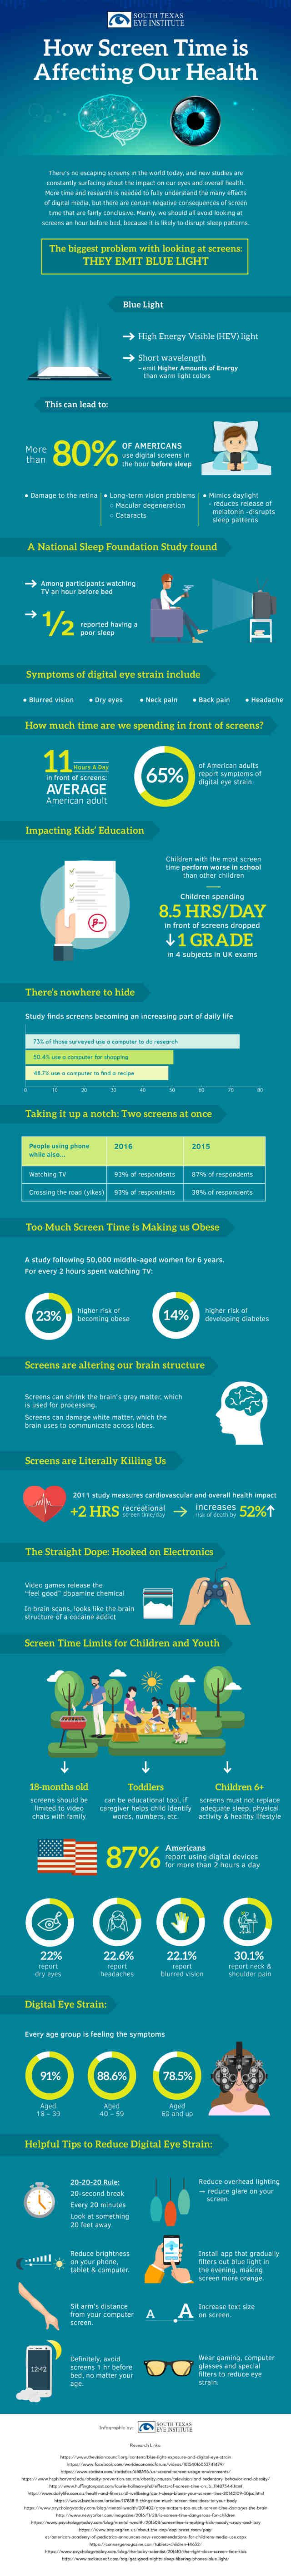 Here is a nice infographic that explores in detail the effects of increased screen time on our eyes and our overall health.